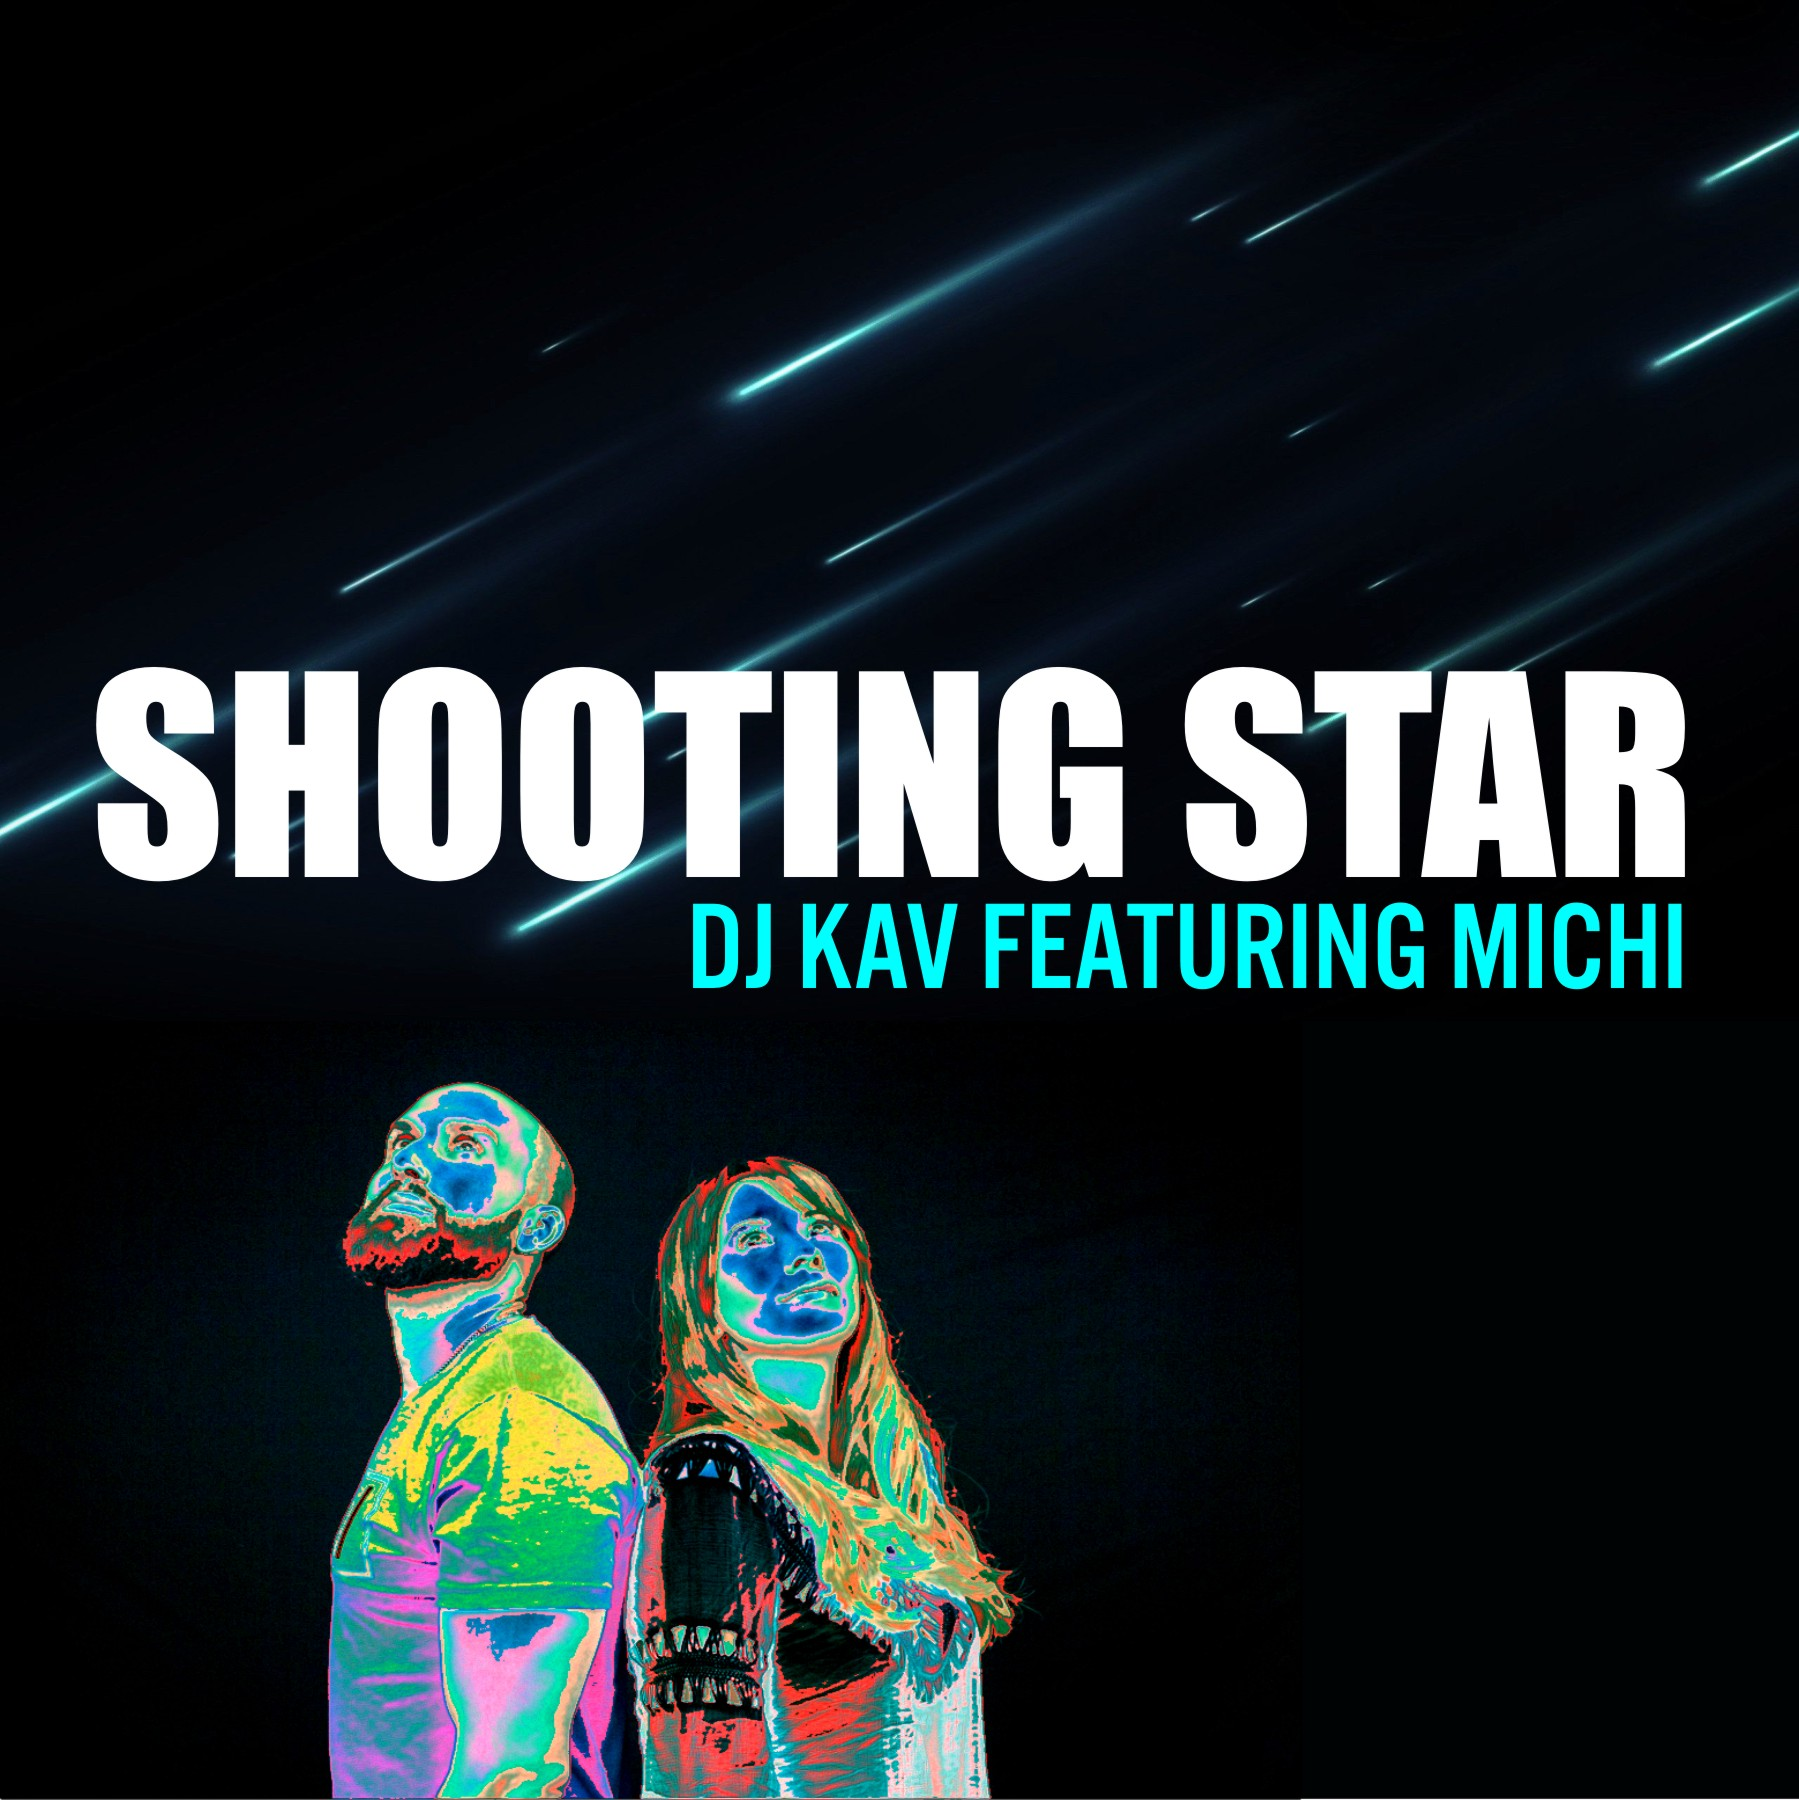 KAV shooting Star graphic.jpg